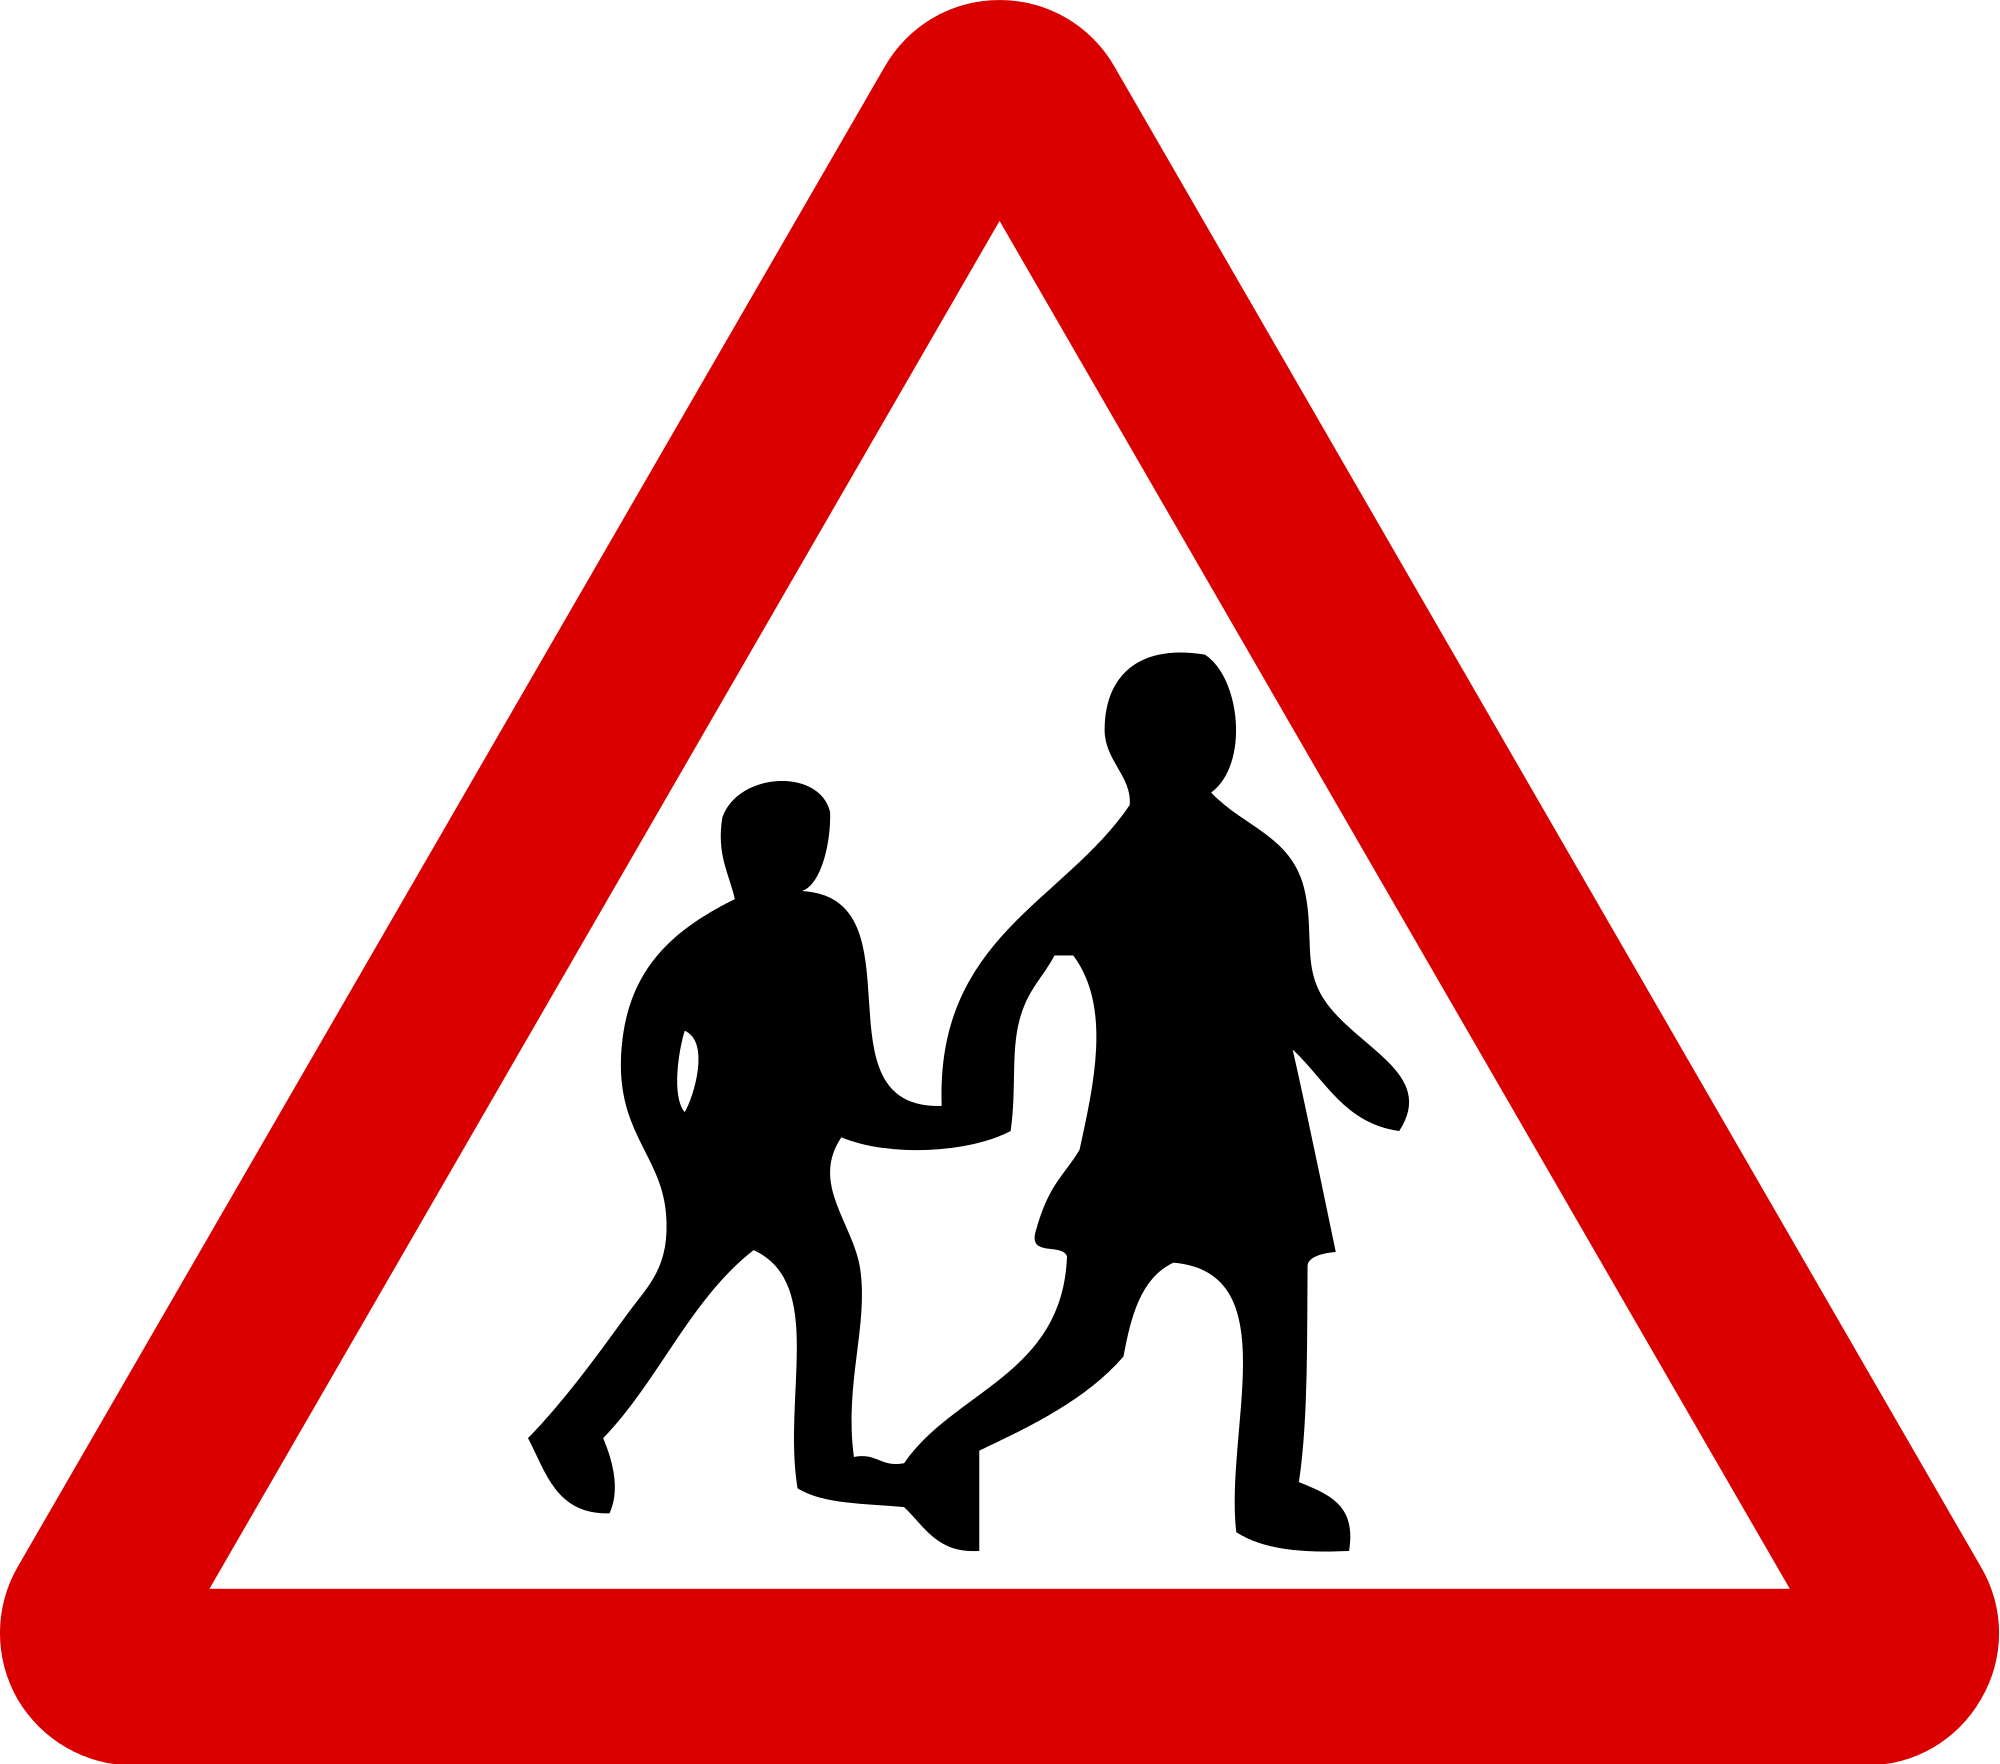 Roadsign vector drawing. Road sign silhouette at